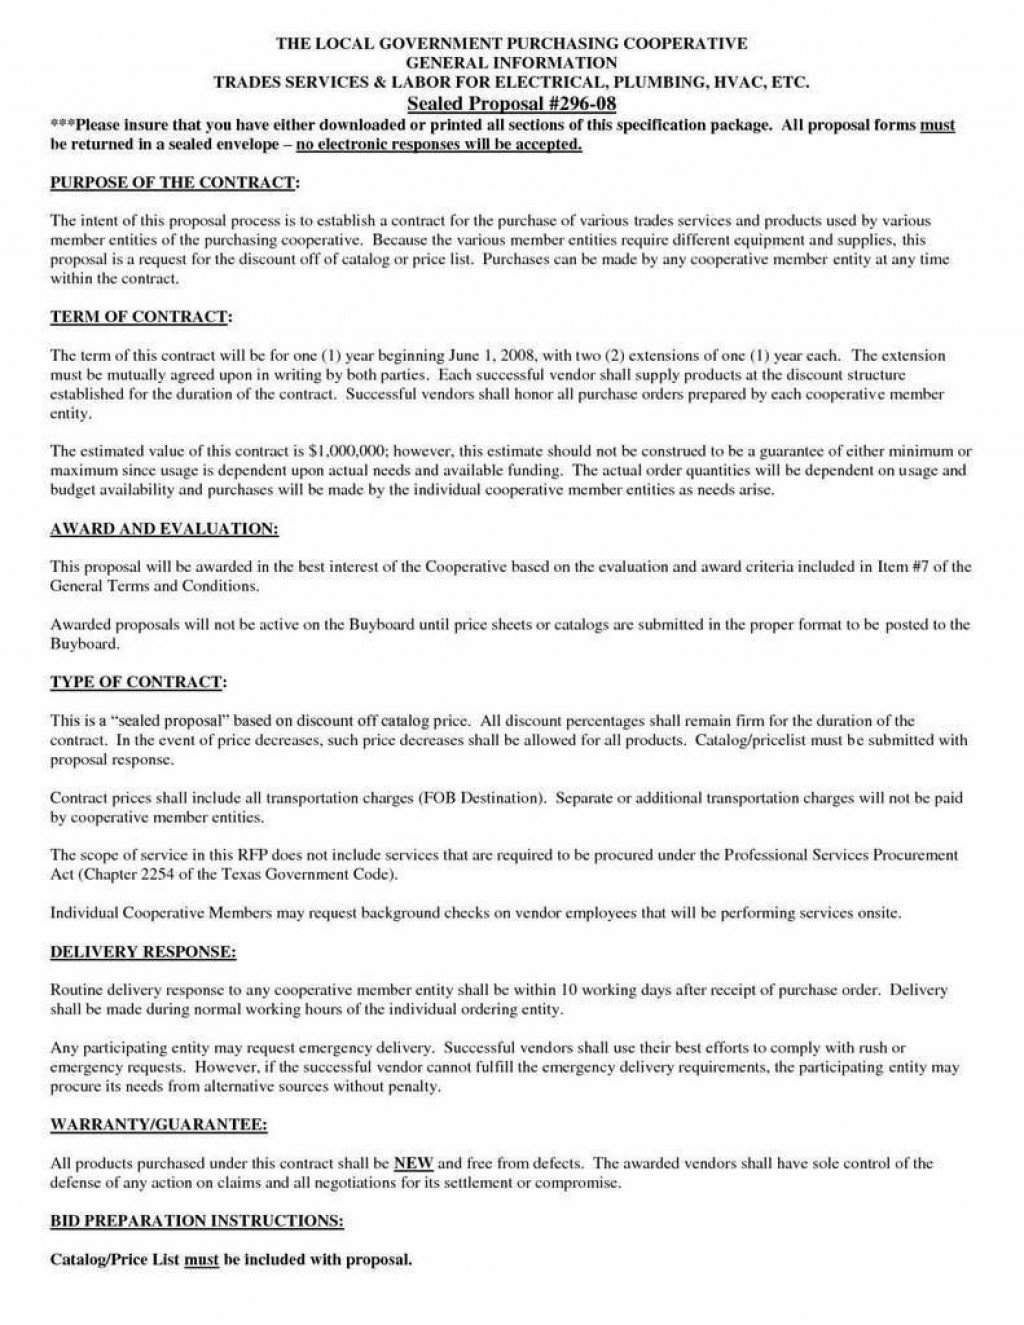 009 Remarkable Hvac Service Agreement Template Sample  Contract Form Maintenance PdfLarge